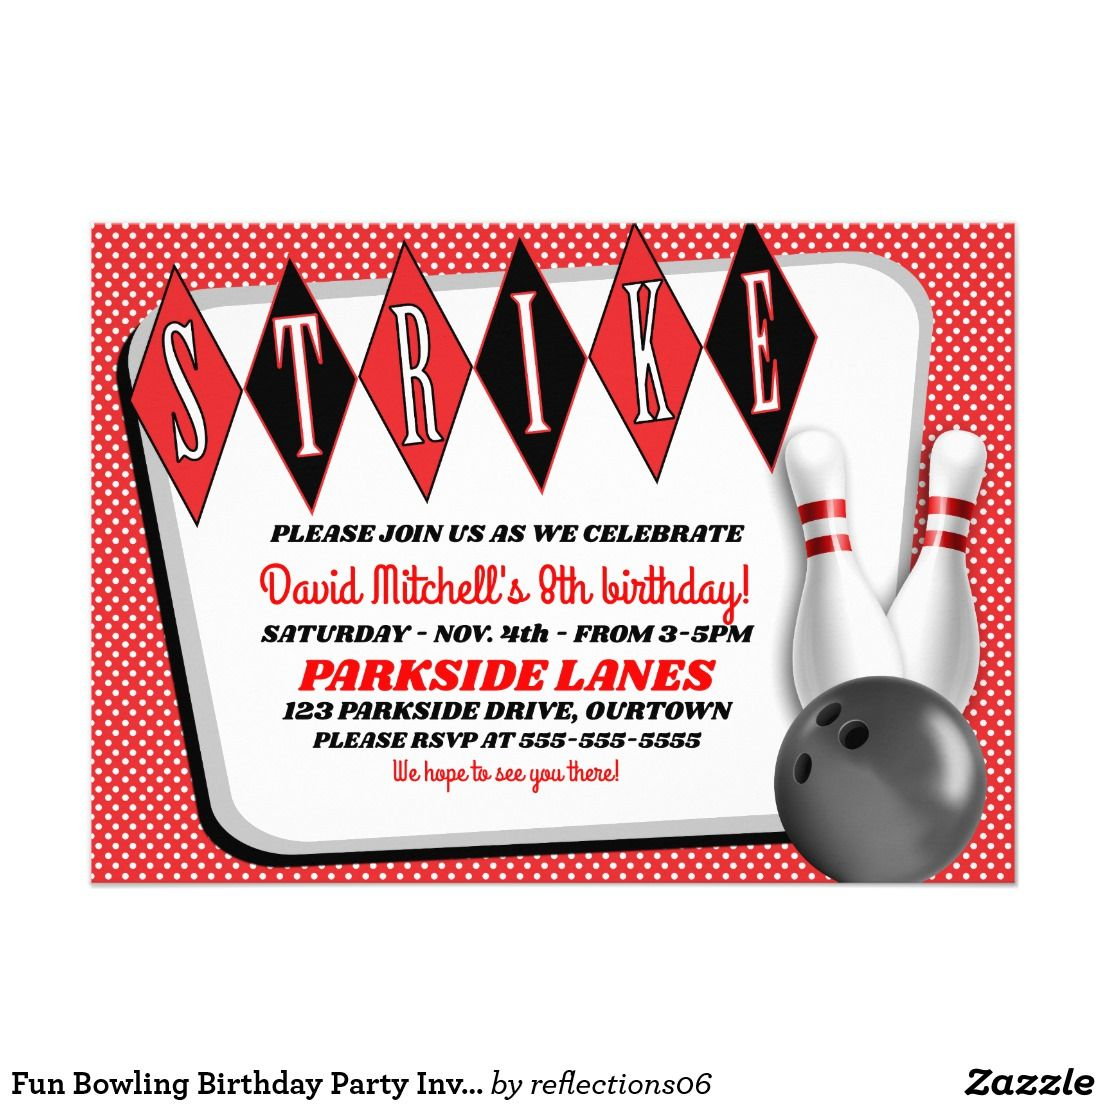 Fun Bowling Birthday Party Invitation | Pinterest | Party ...